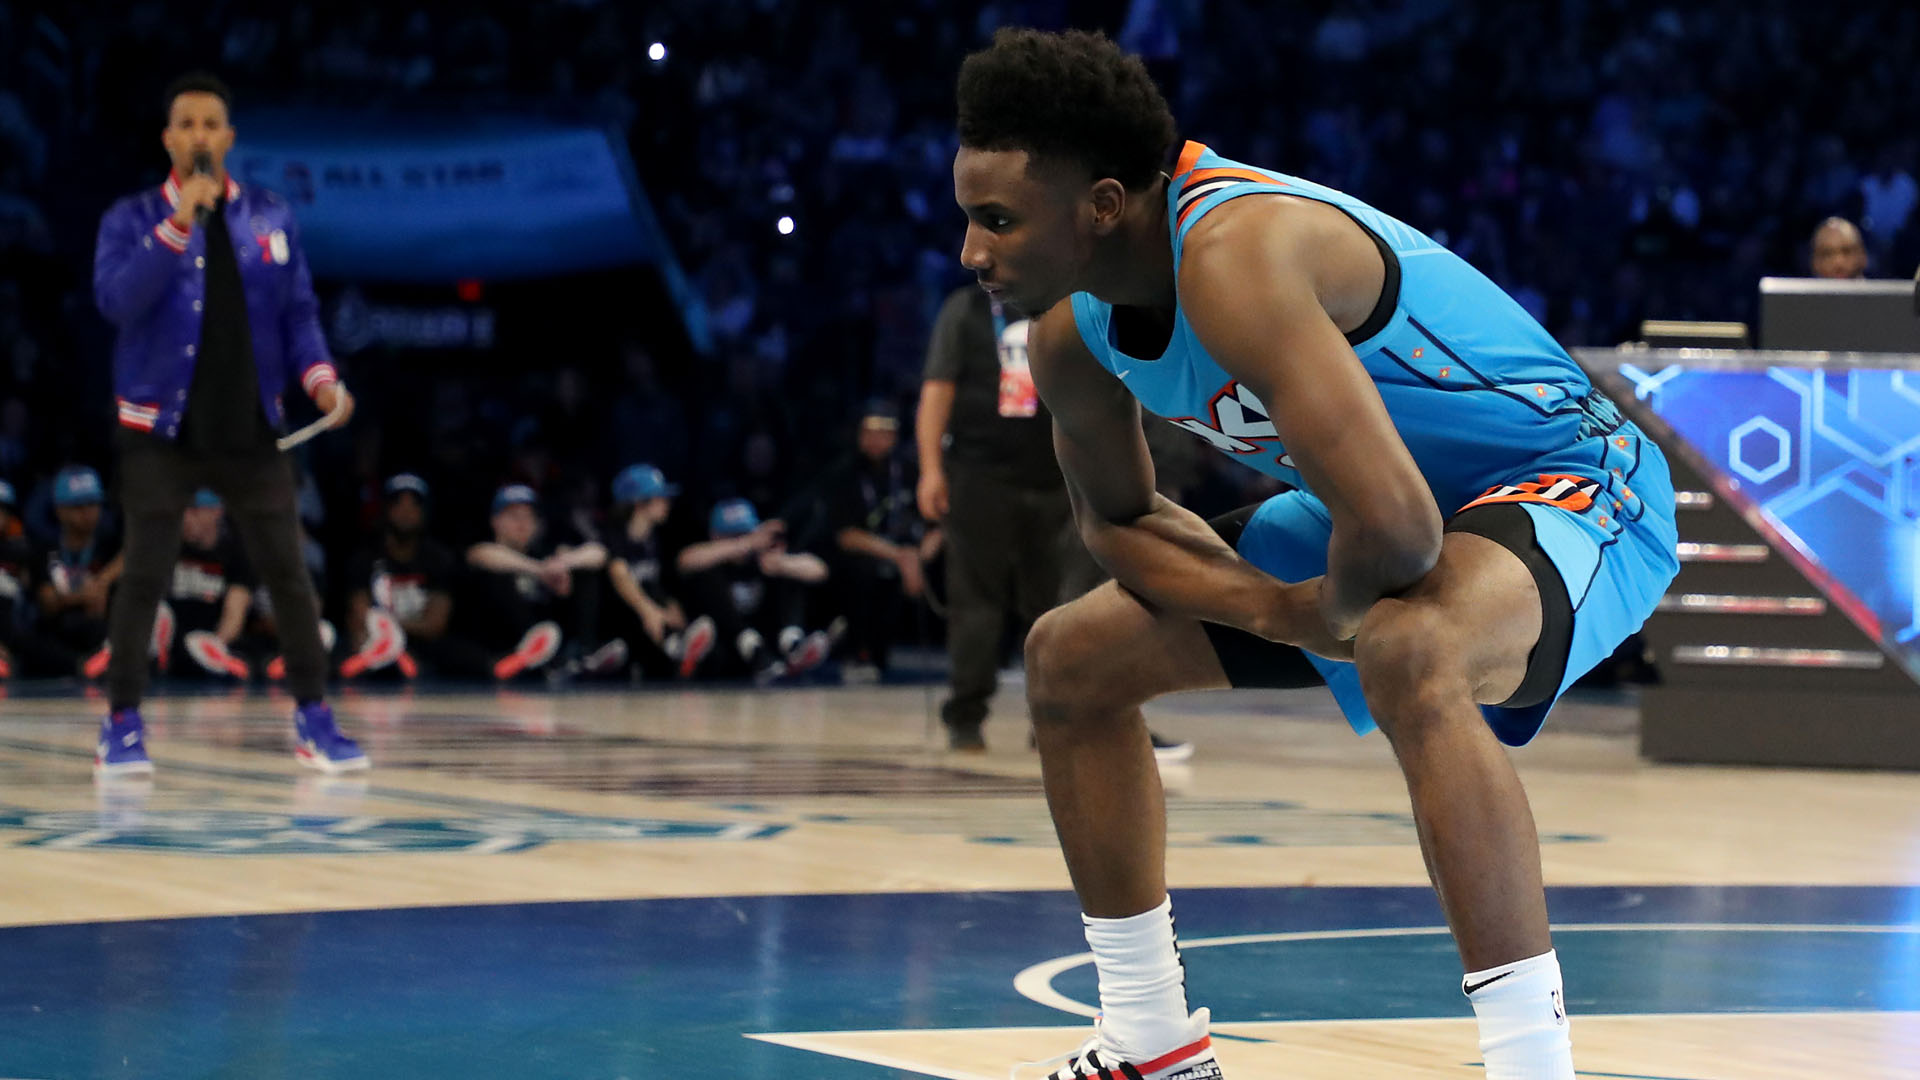 Thunder's Hamidou Diallo says he only practiced once for dunk contest